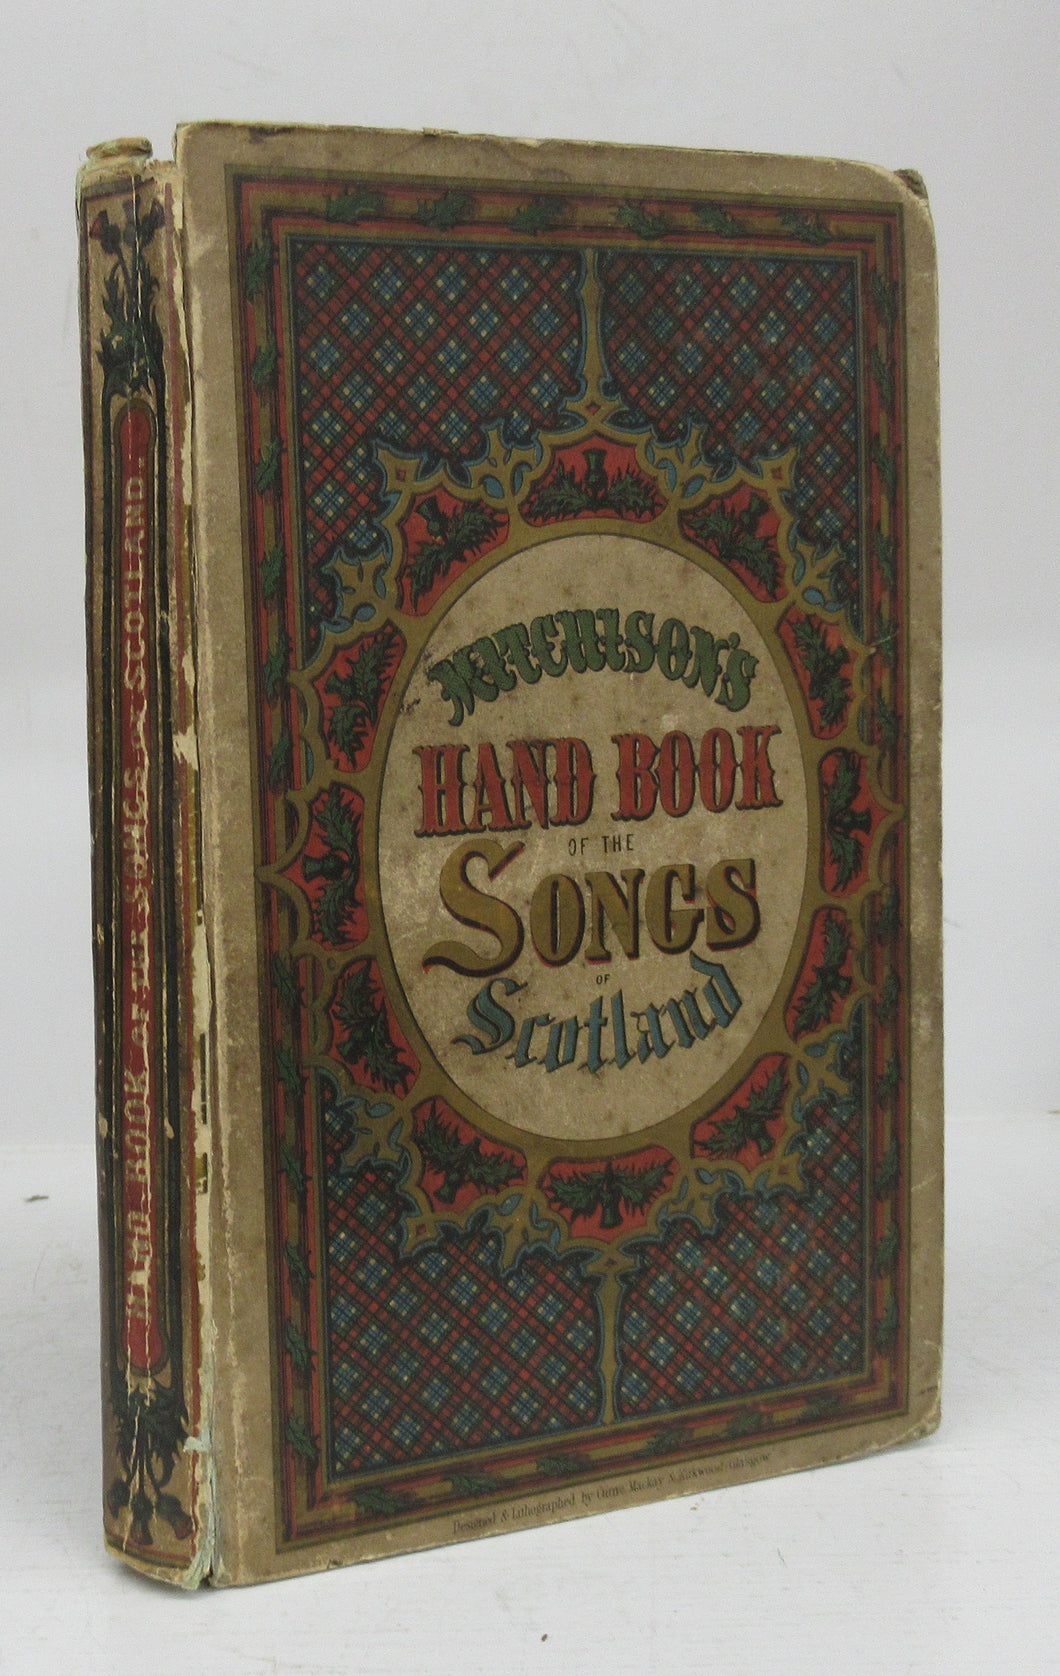 Hand-book of the Songs of Scotland, With Illustrations, Descriptive and Historical Notes